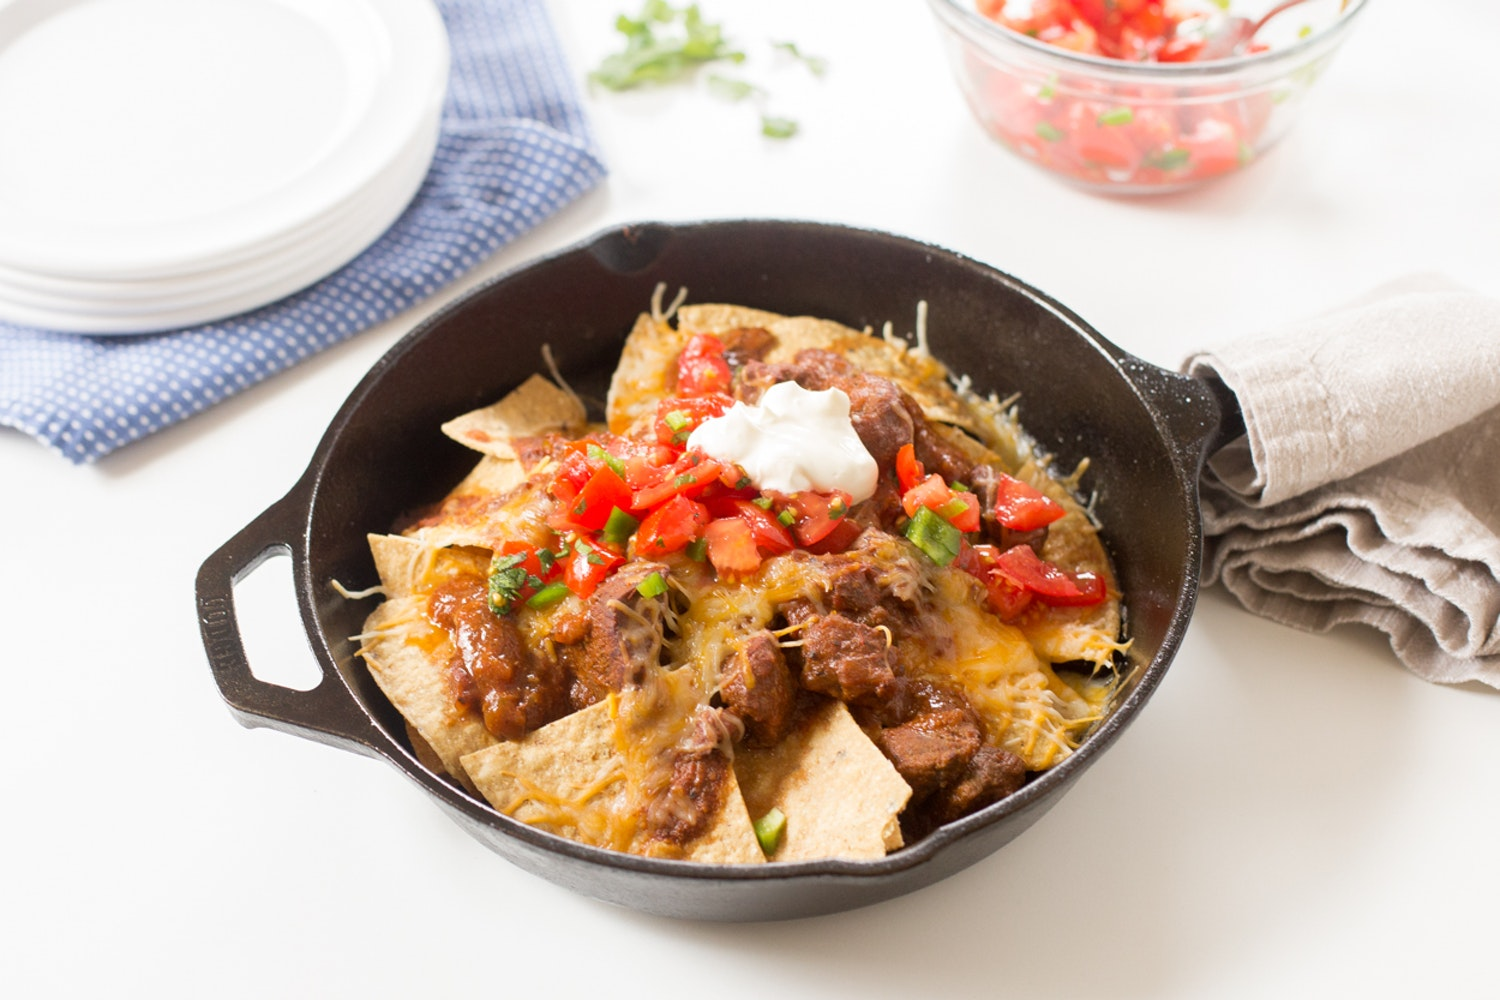 20180115 leftover texas chili nachos nm 2.jpg?ixlib=rails 2.1